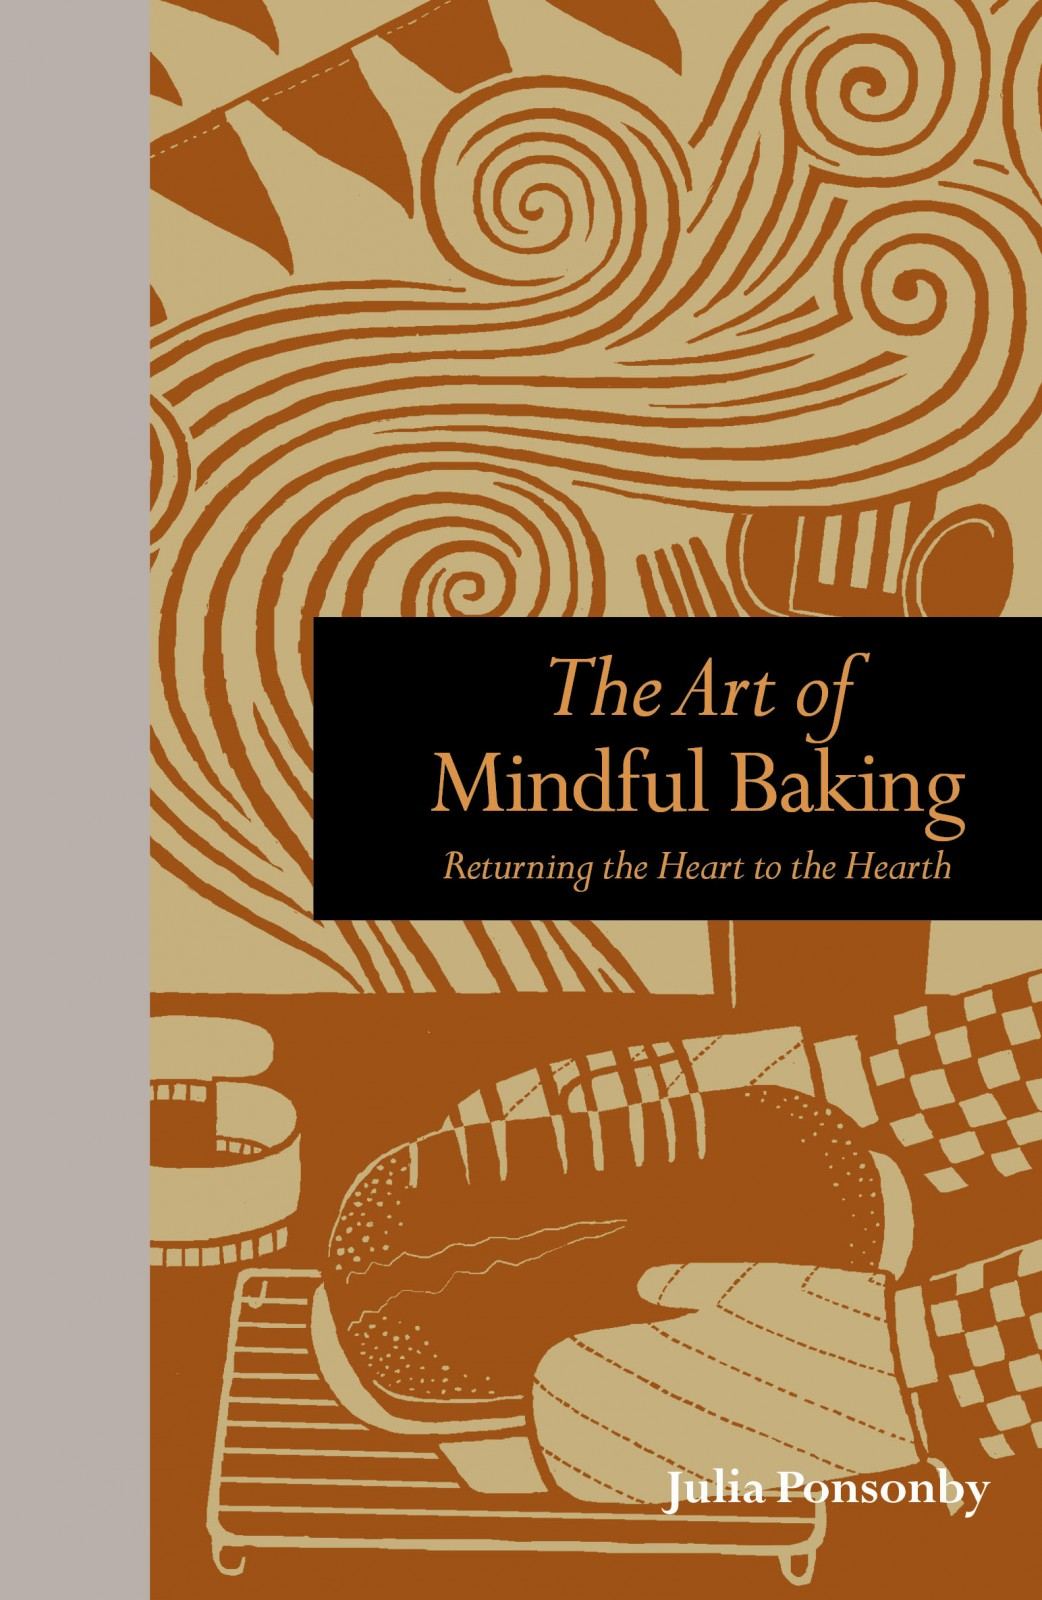 The Art of Mindful Baking - Returning the Heart to the Hearth